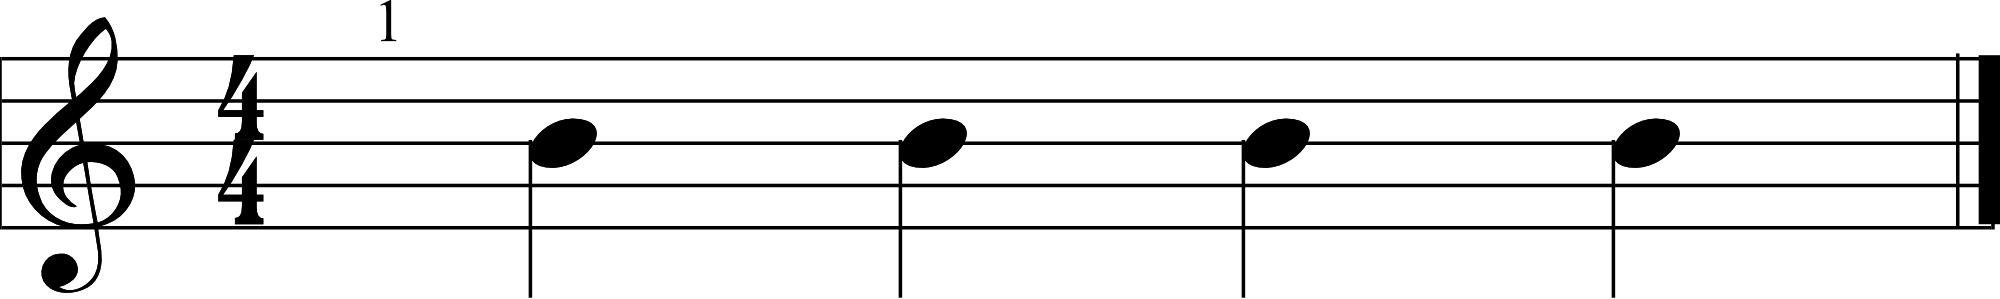 Quarter Note Example